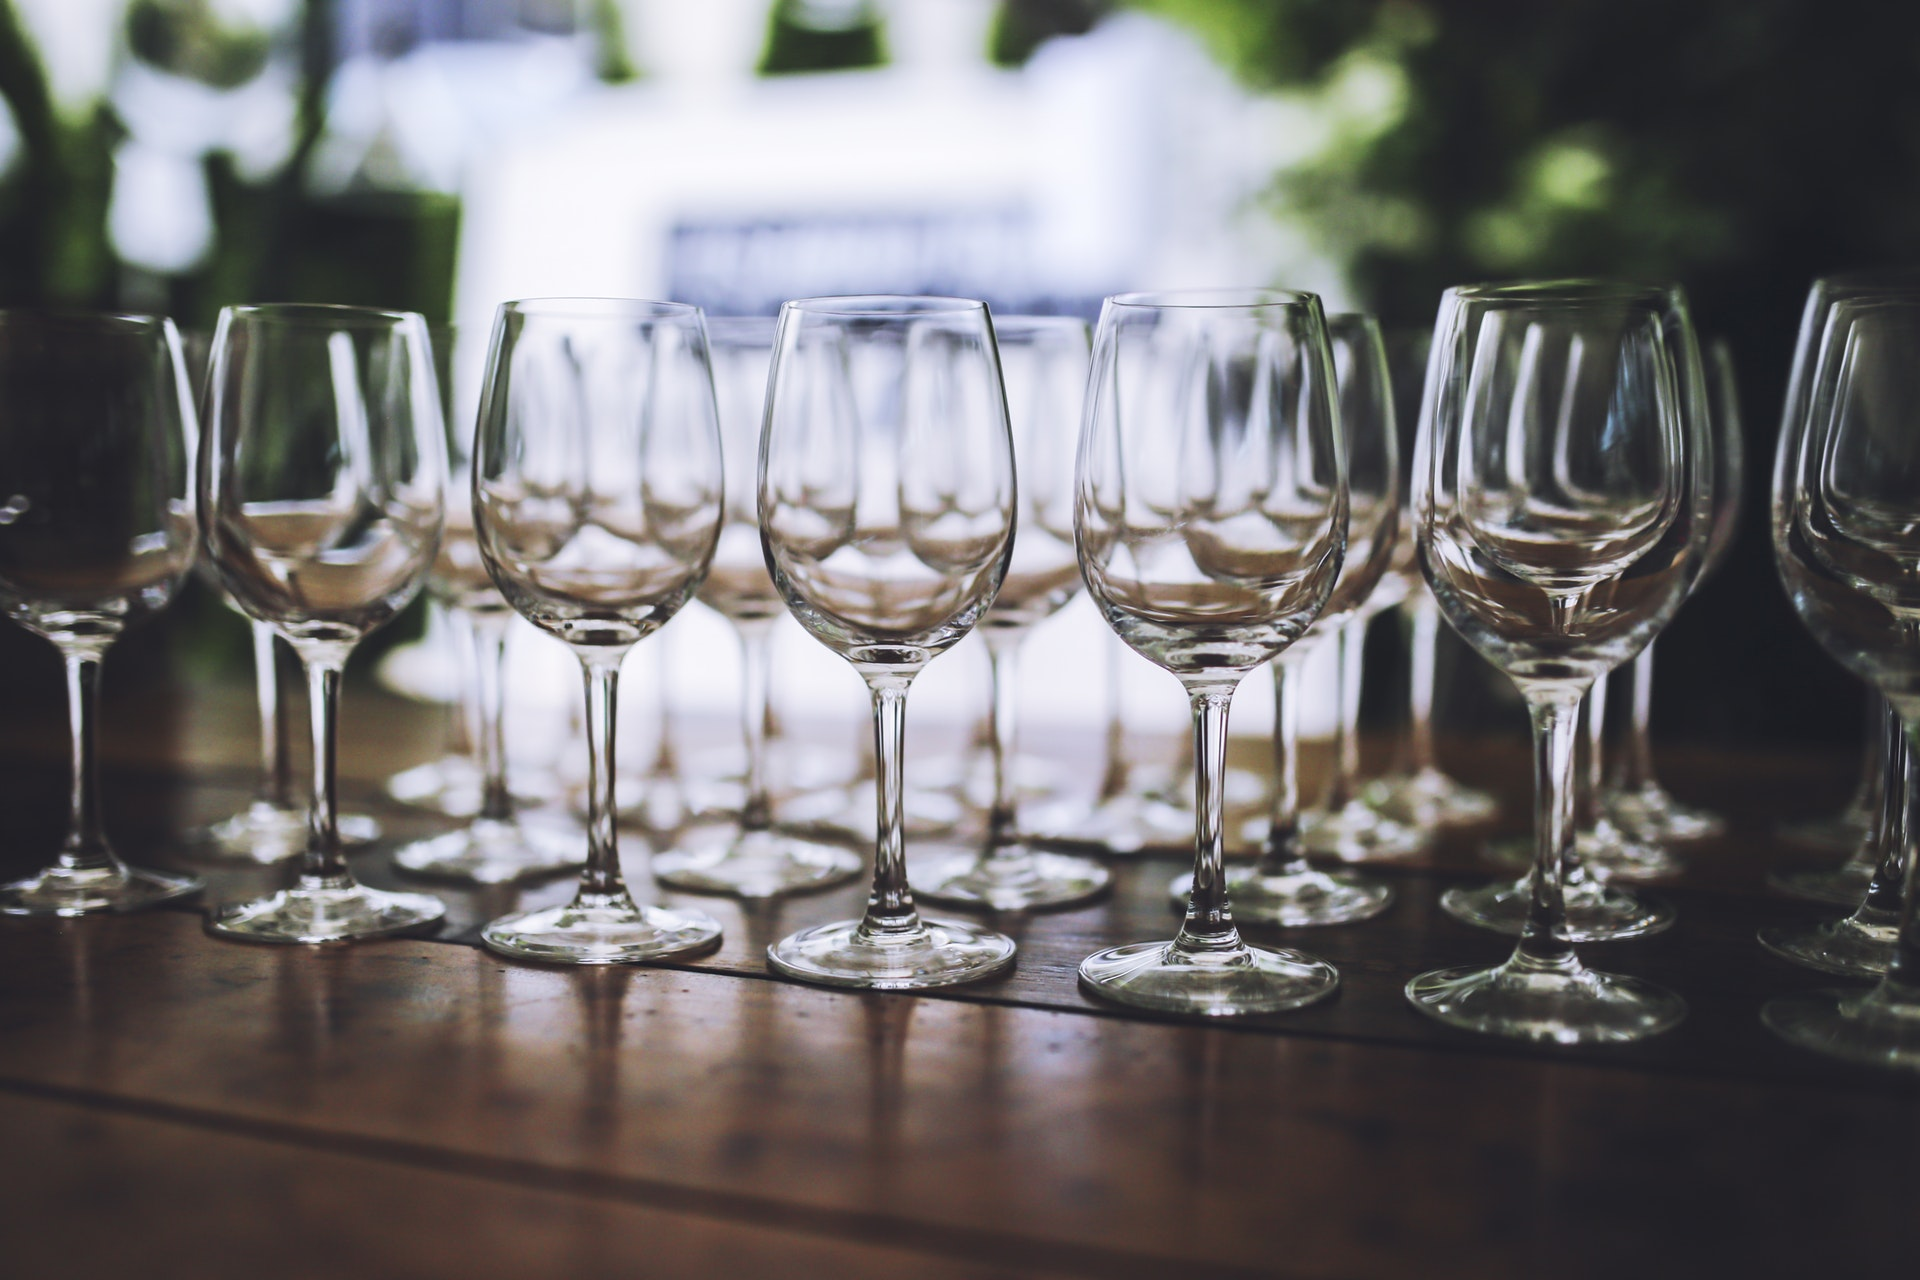 alcohol-glass-wine-glasses